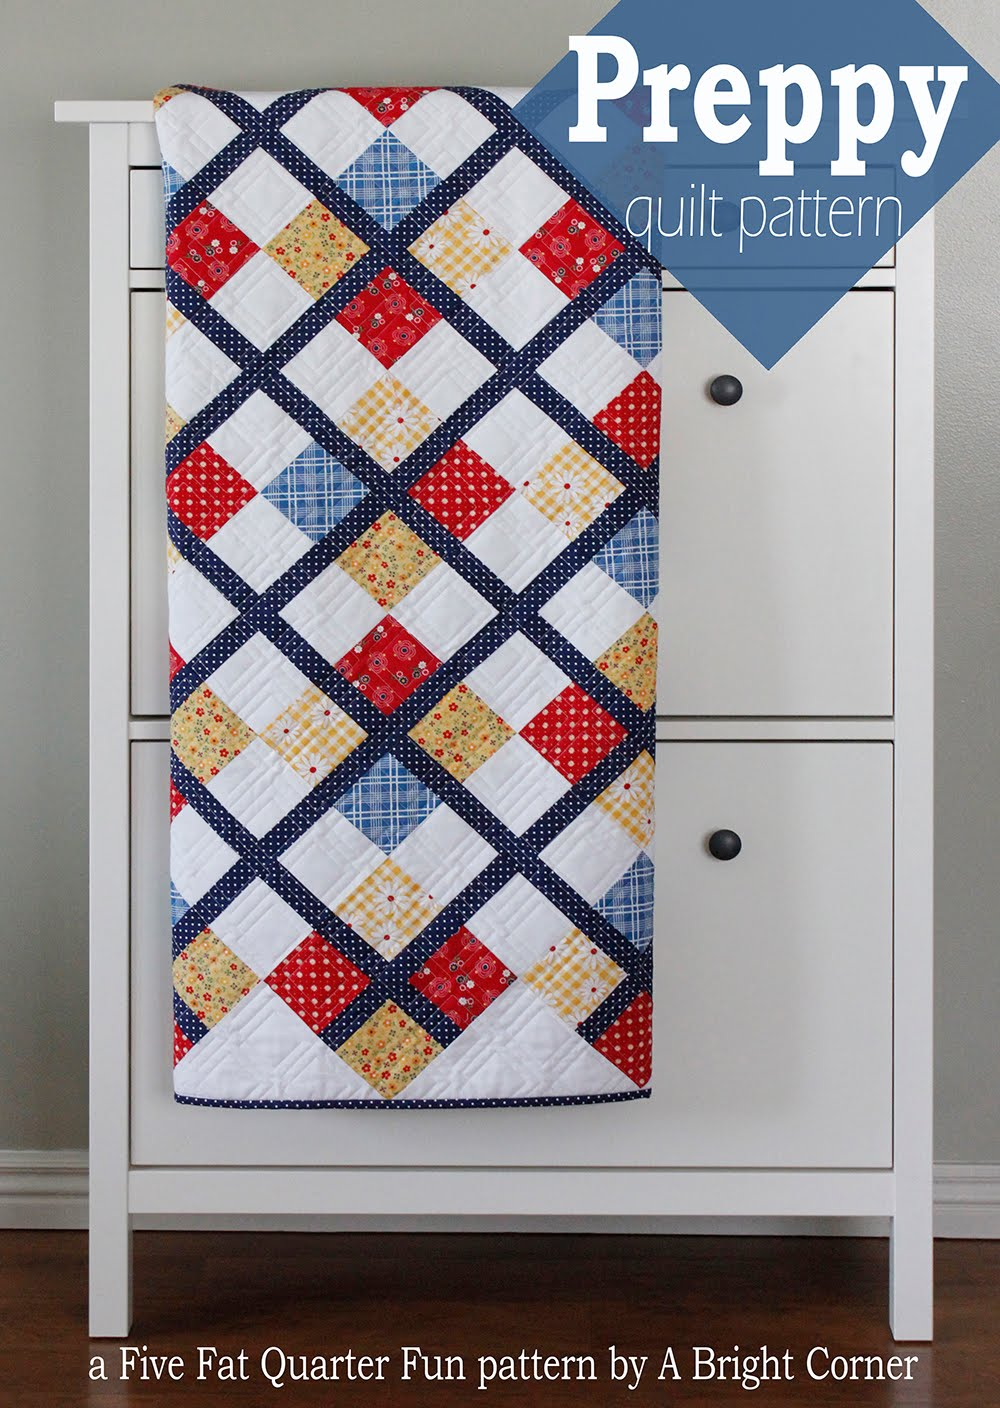 fat quarter quilt patterns A Bright Corner: Five Fat Quarter Fun   Preppy Quilt Pattern fat quarter quilt patterns